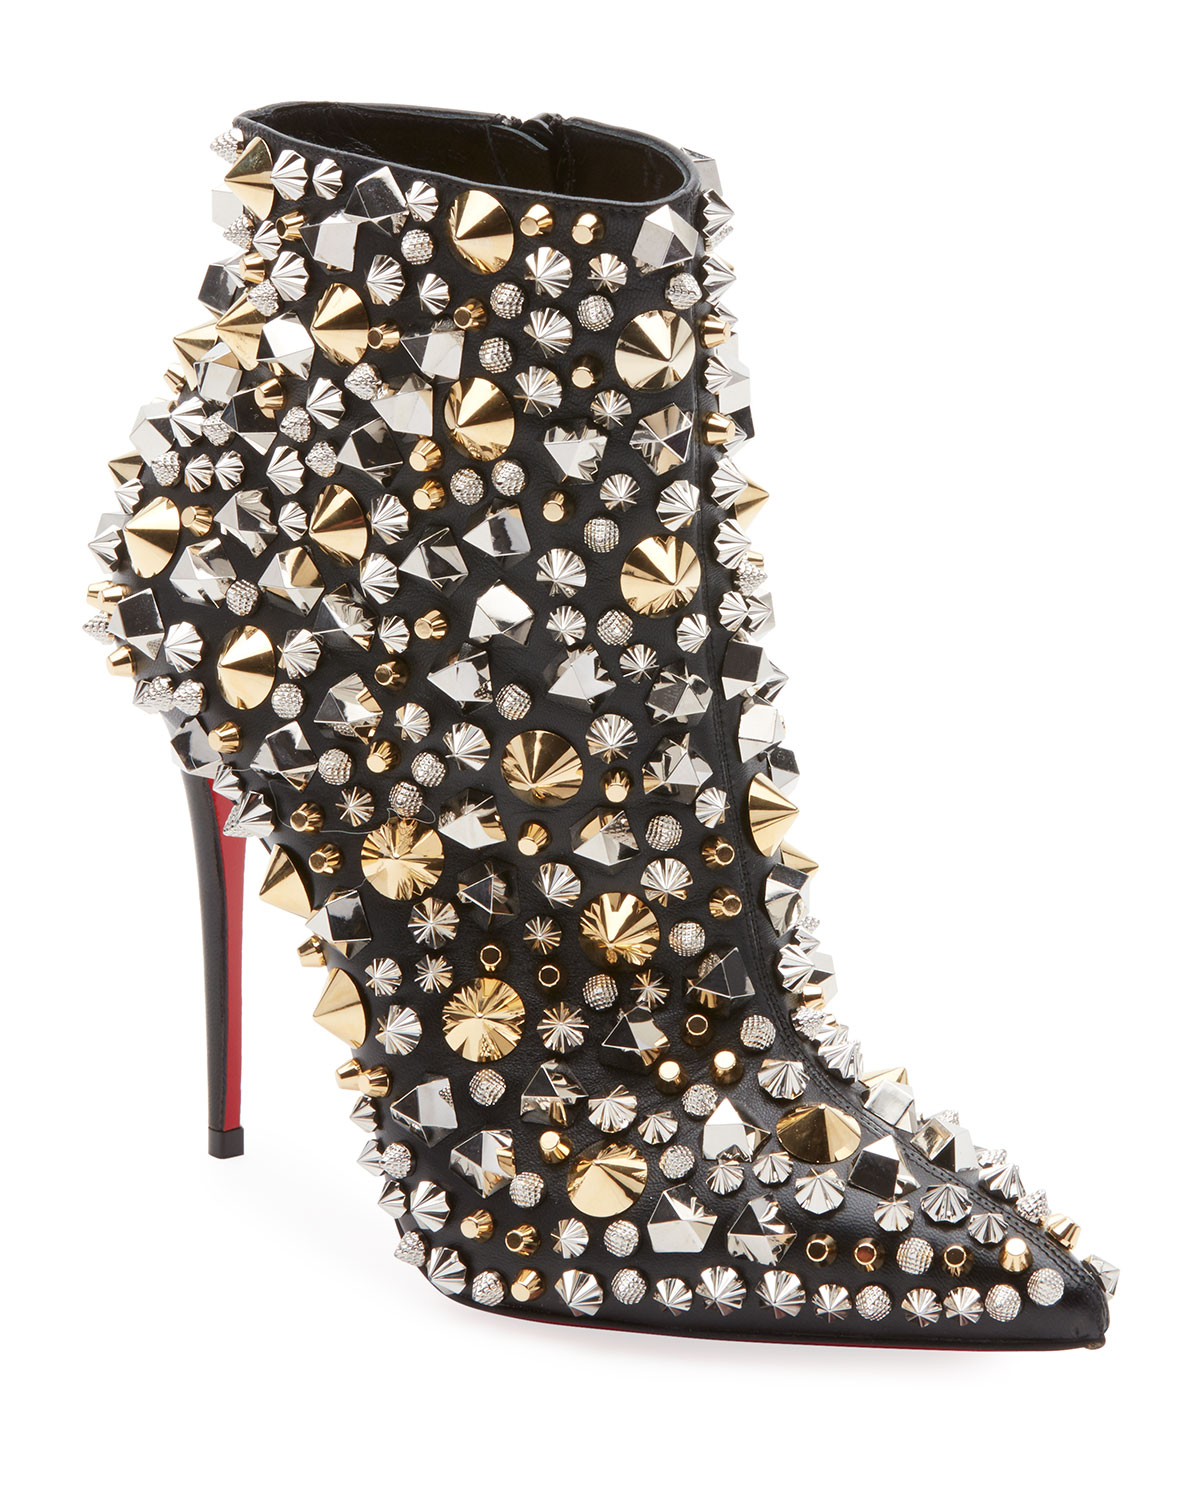 CHRISTIAN LOUBOUTIN SO FULL KATE STUDDED NAPA RED SOLE BOOTIE